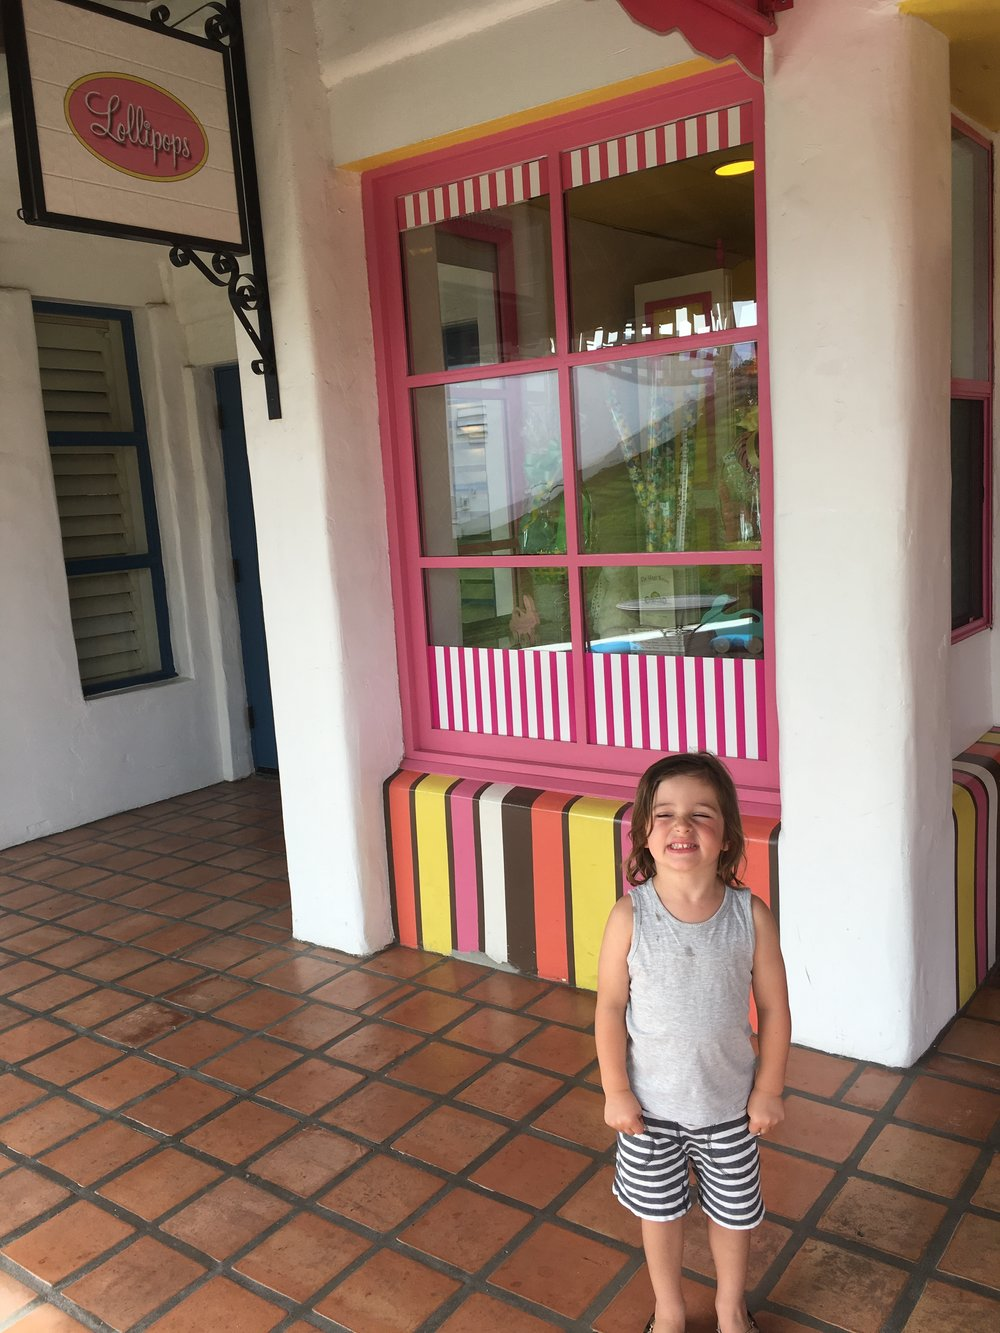 We found a sweet store! Hudson was excited.